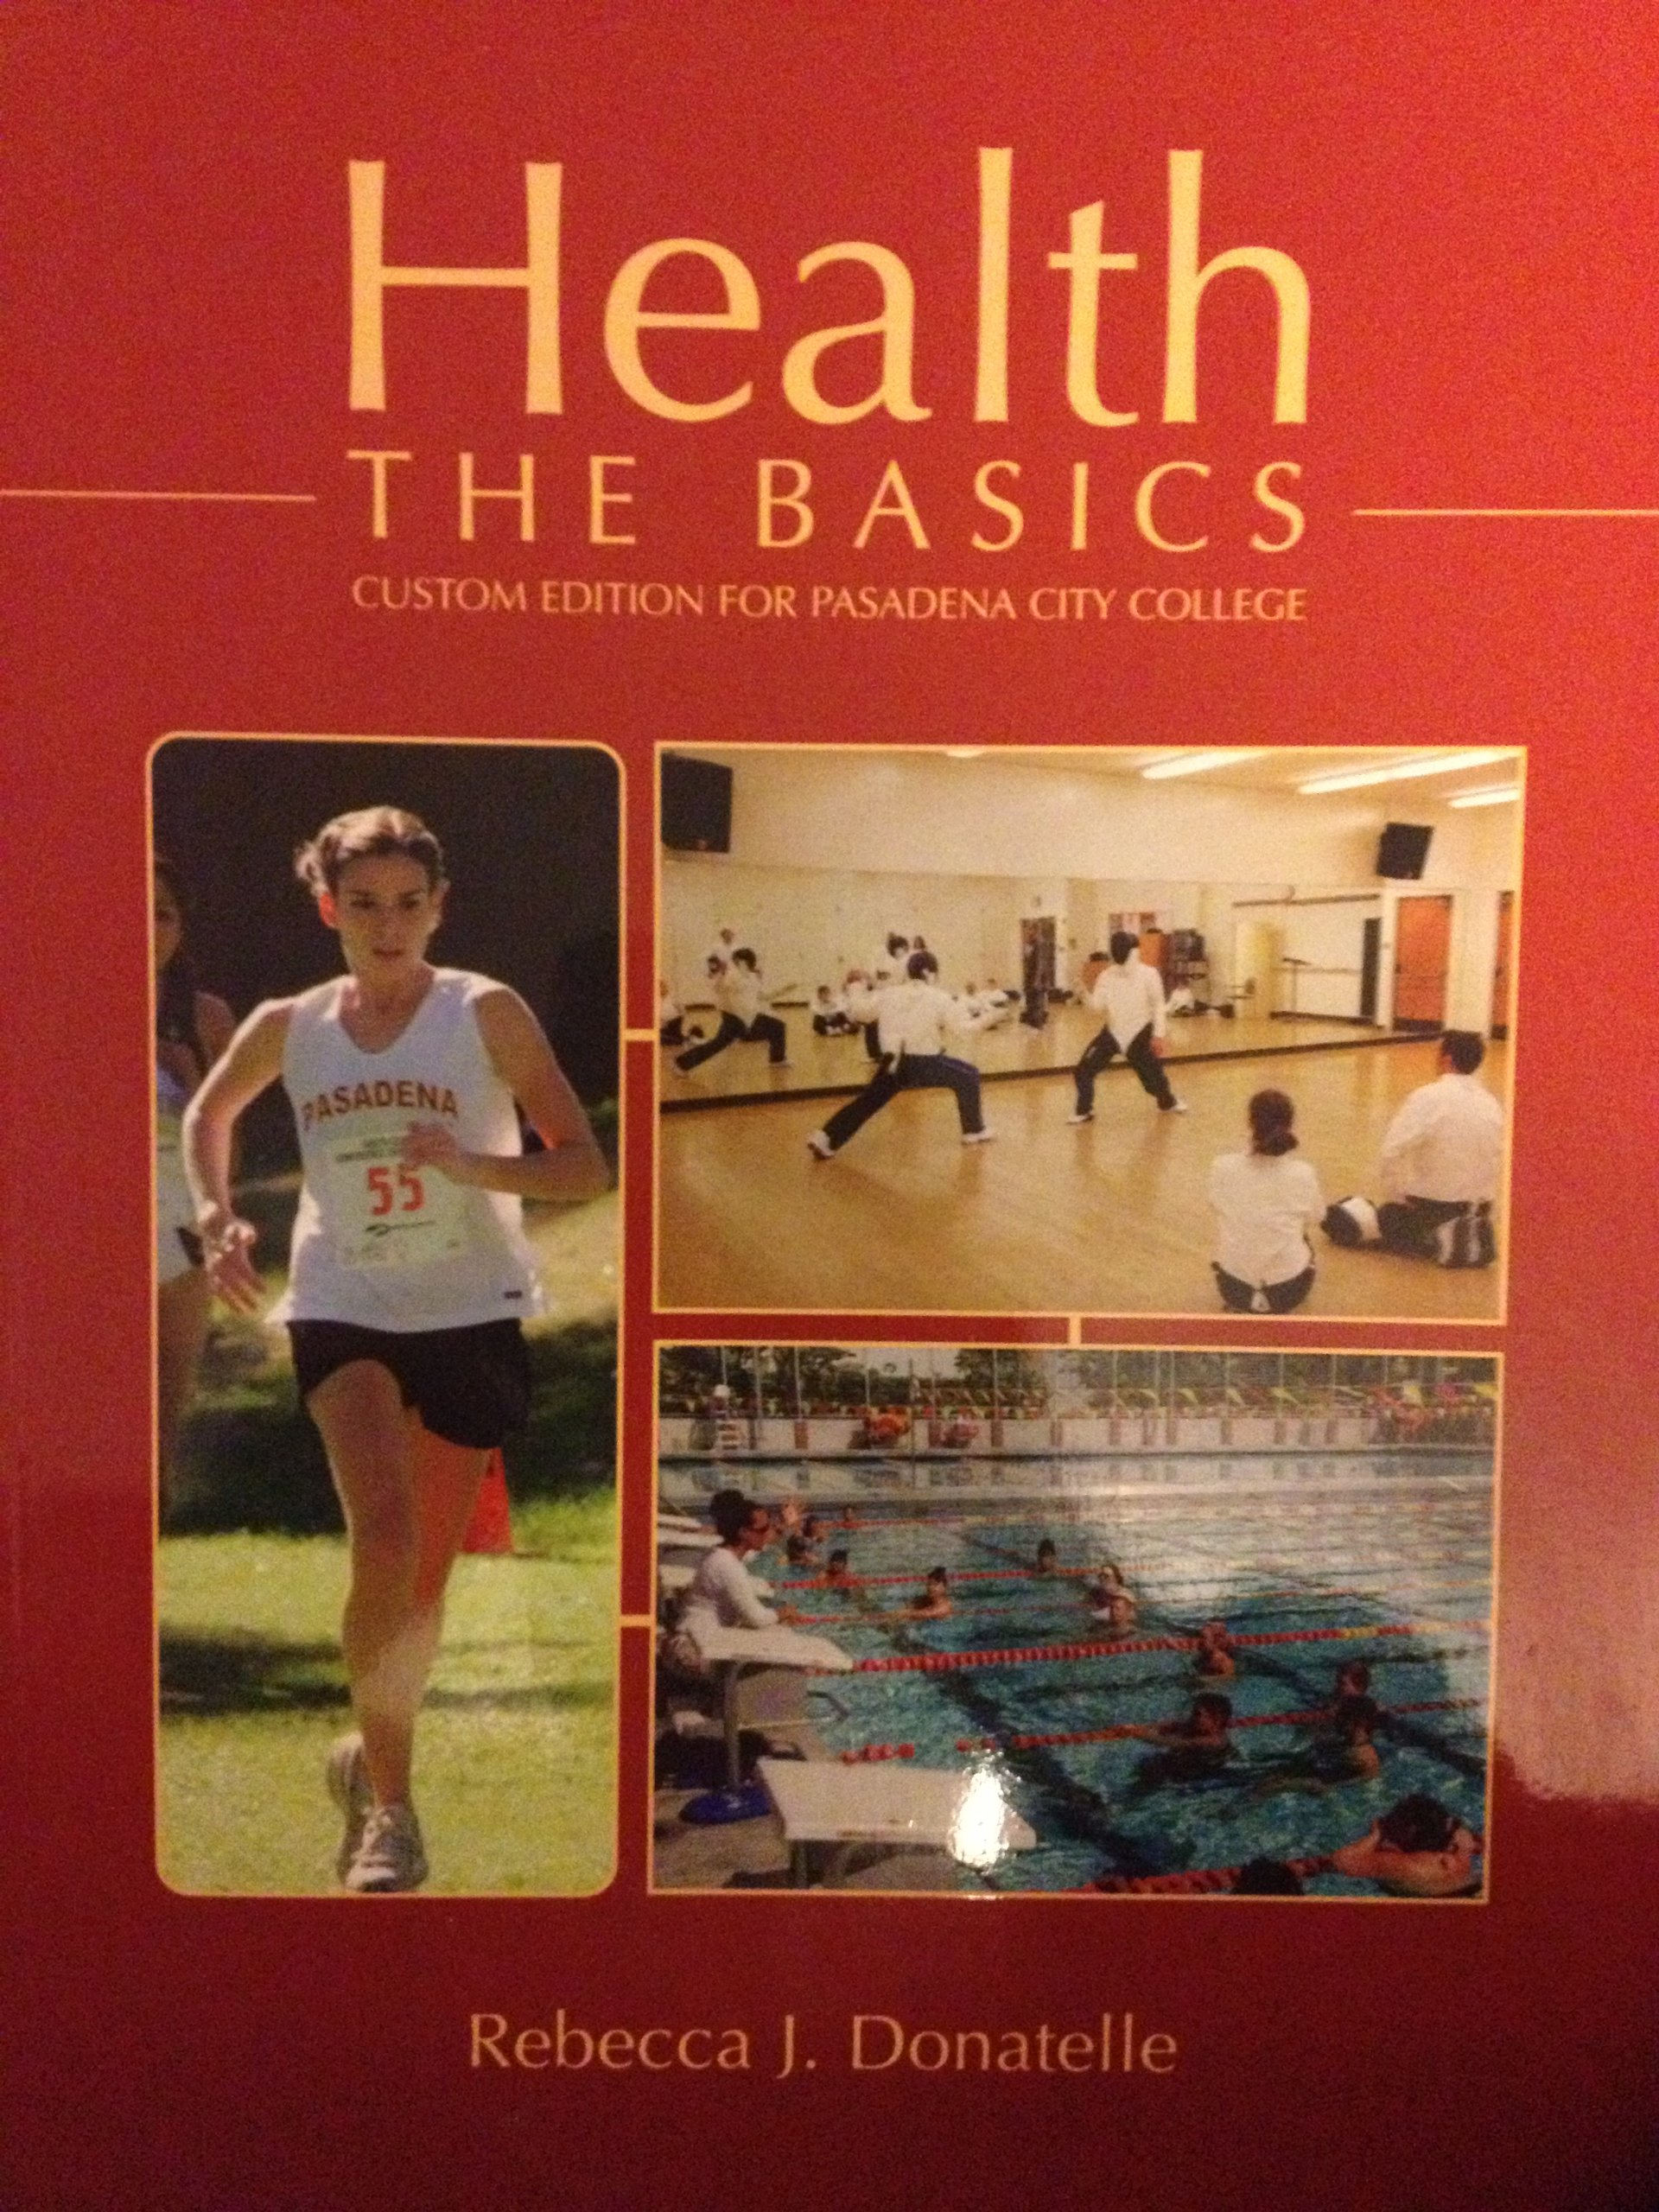 Health the basics custom edition for pasadena city college health the basics custom edition for pasadena city college donatelle 9780536570680 amazon books fandeluxe